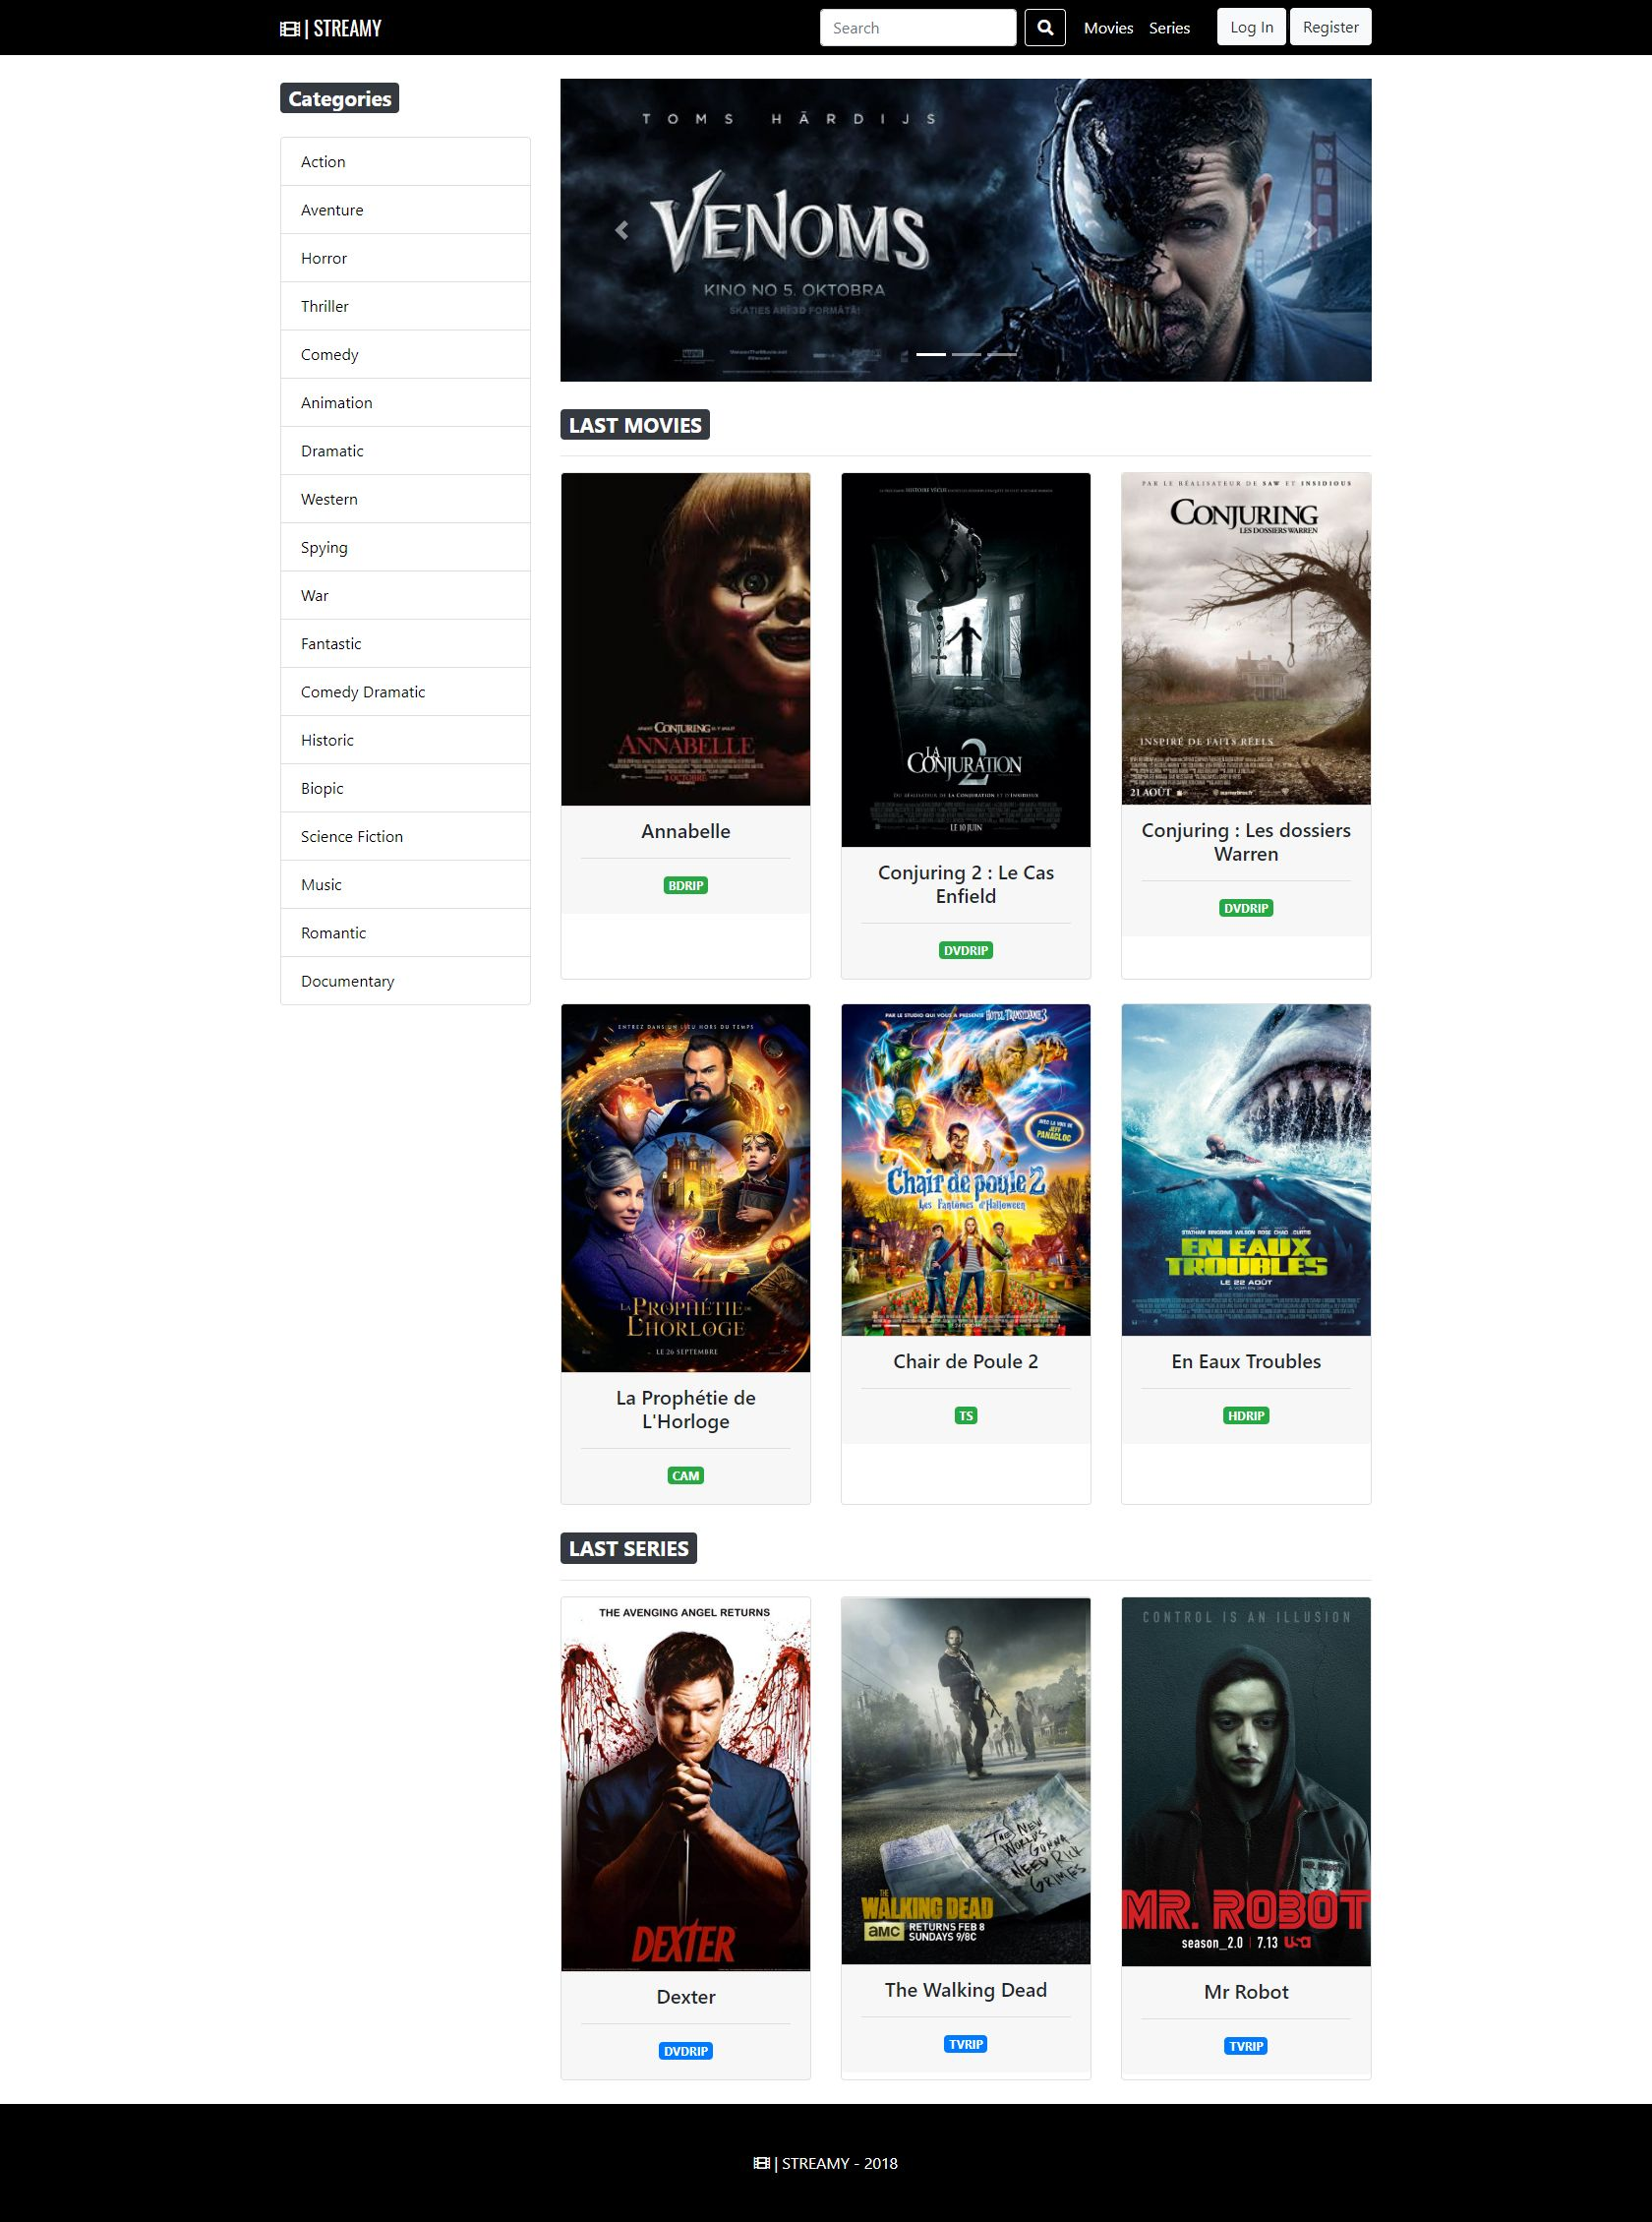 Streamy - Movies And Series Streaming Platform PHP Screenshot 13